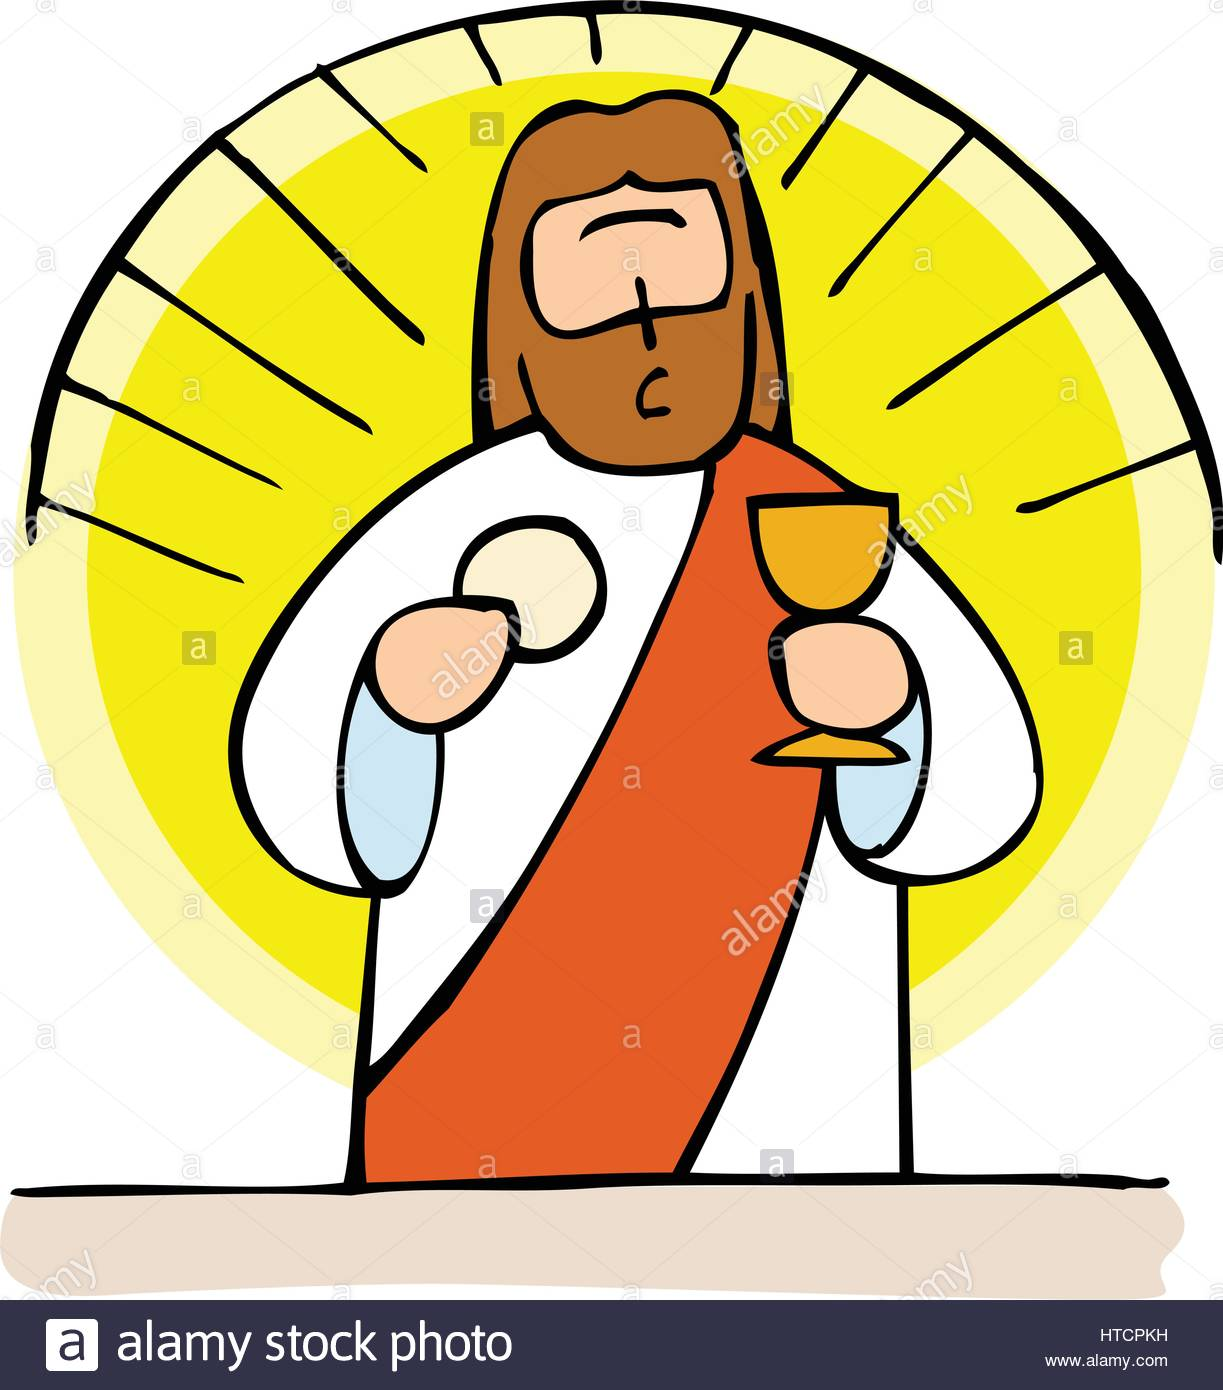 Bread of life clipart 4 » Clipart Station.